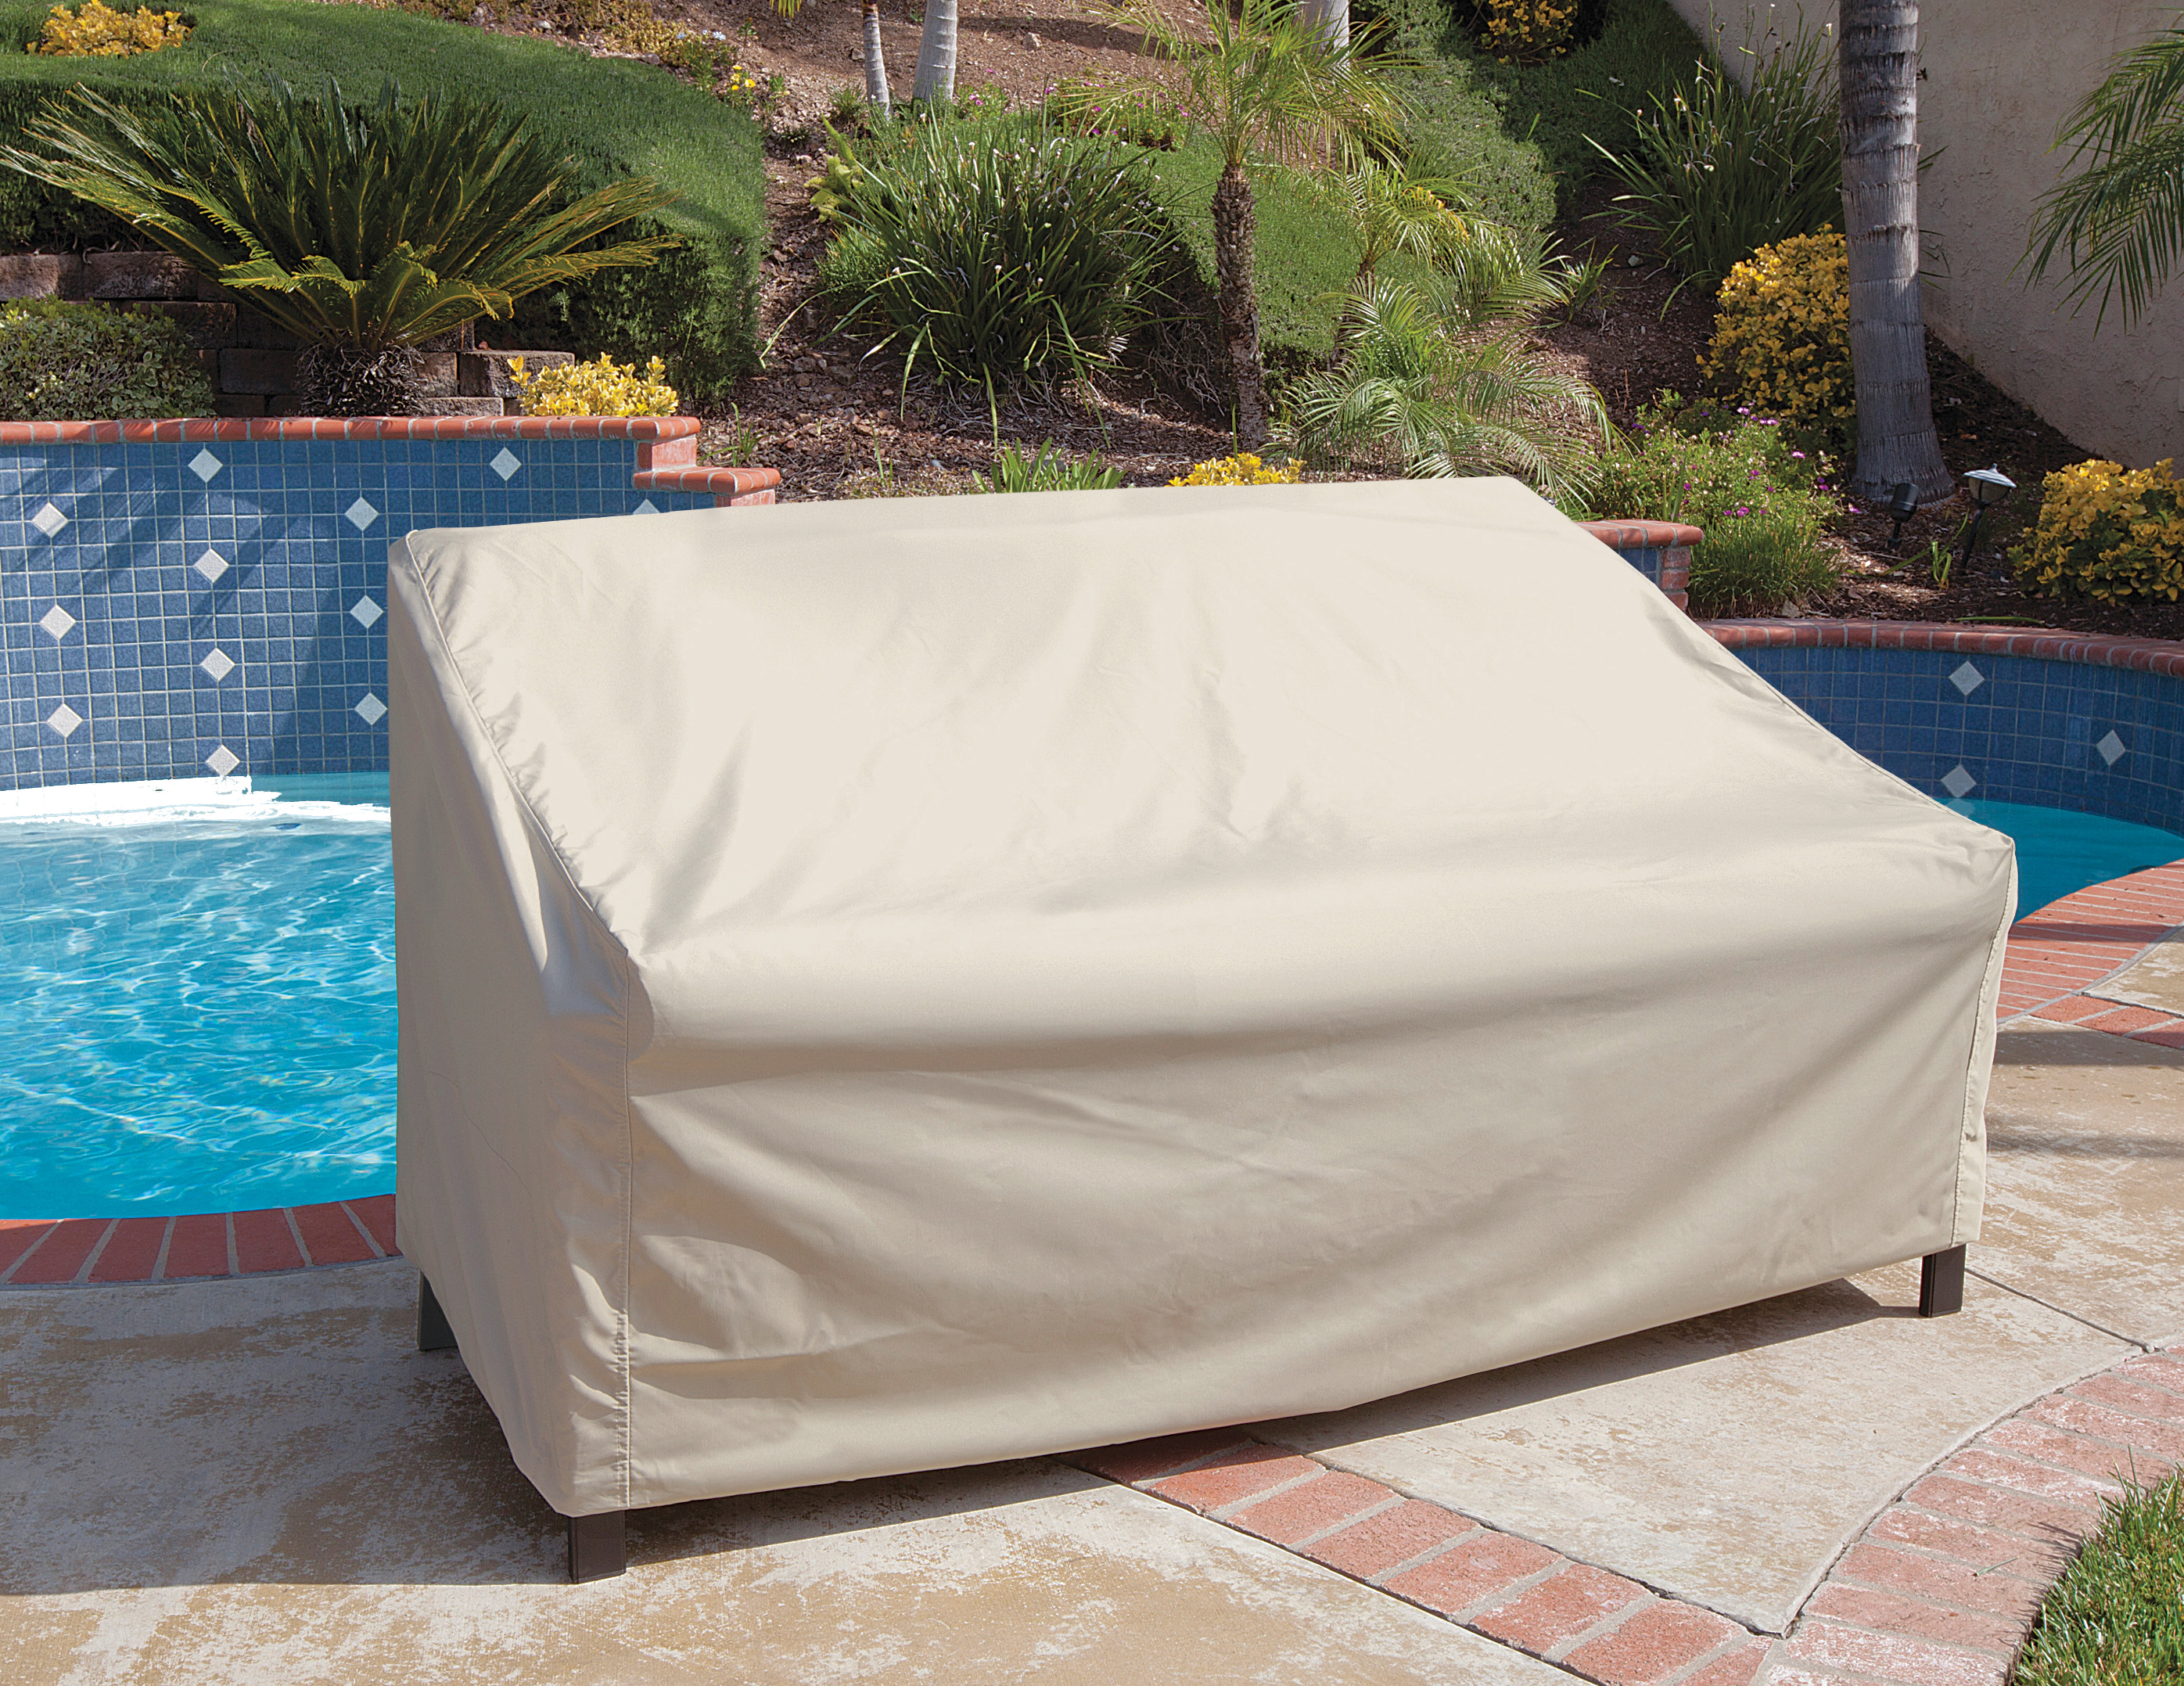 Treasure Garden to Showcase Redesigned Protective Furniture Covers at Winter Las Vegas Market